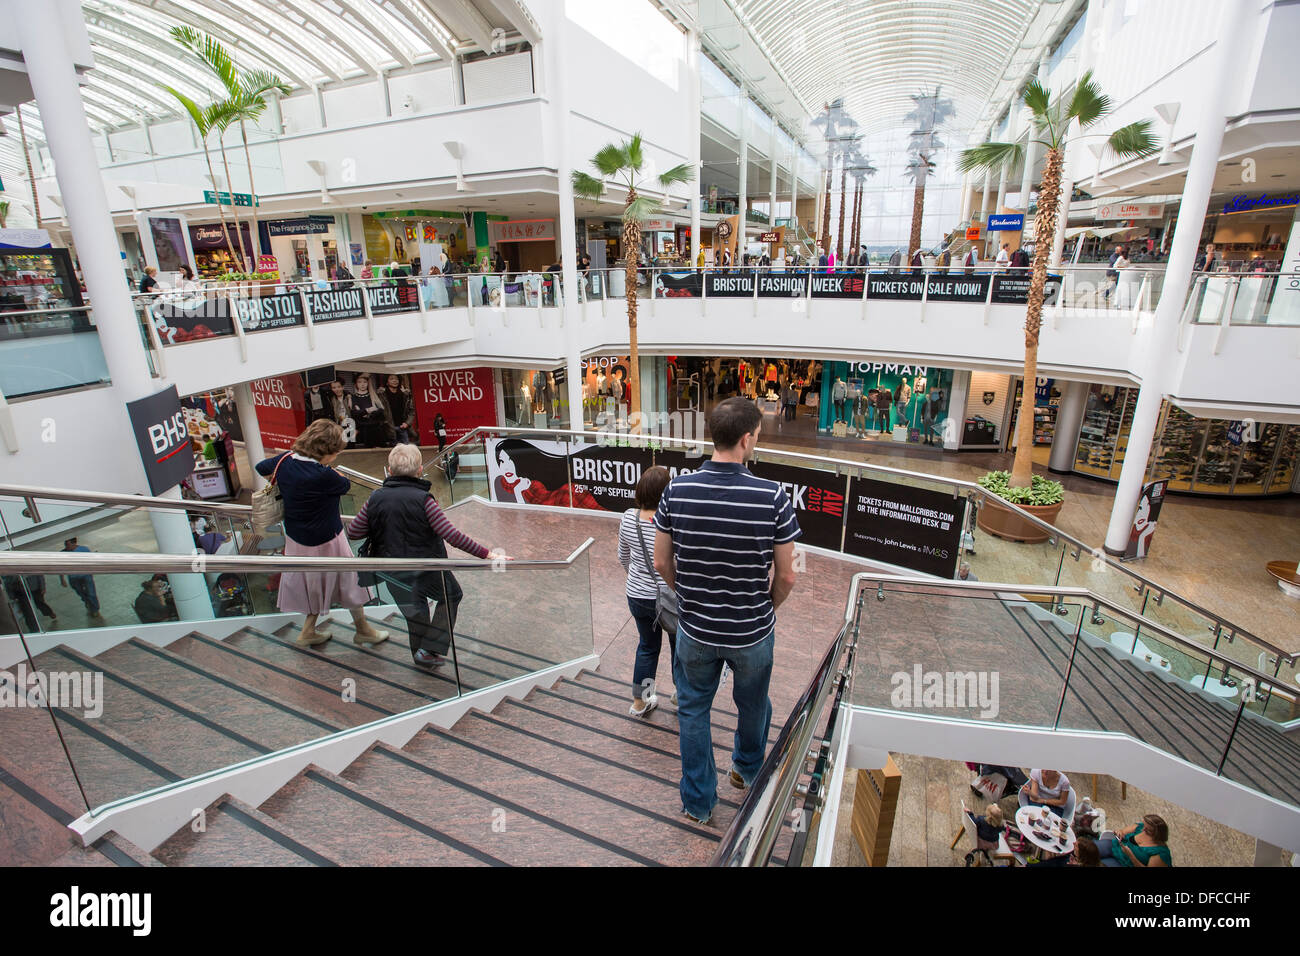 Reviews on Outlet Shopping in Bristol, United Kingdom - Cabot Circus, Clifton Down Shopping Centre, Broadmead Shopping Centre, Bargainland, Outfit, Yate Shopping Centre, The Mall At Cribbs Causeway, The Gatehouse, BS8, peacocks.